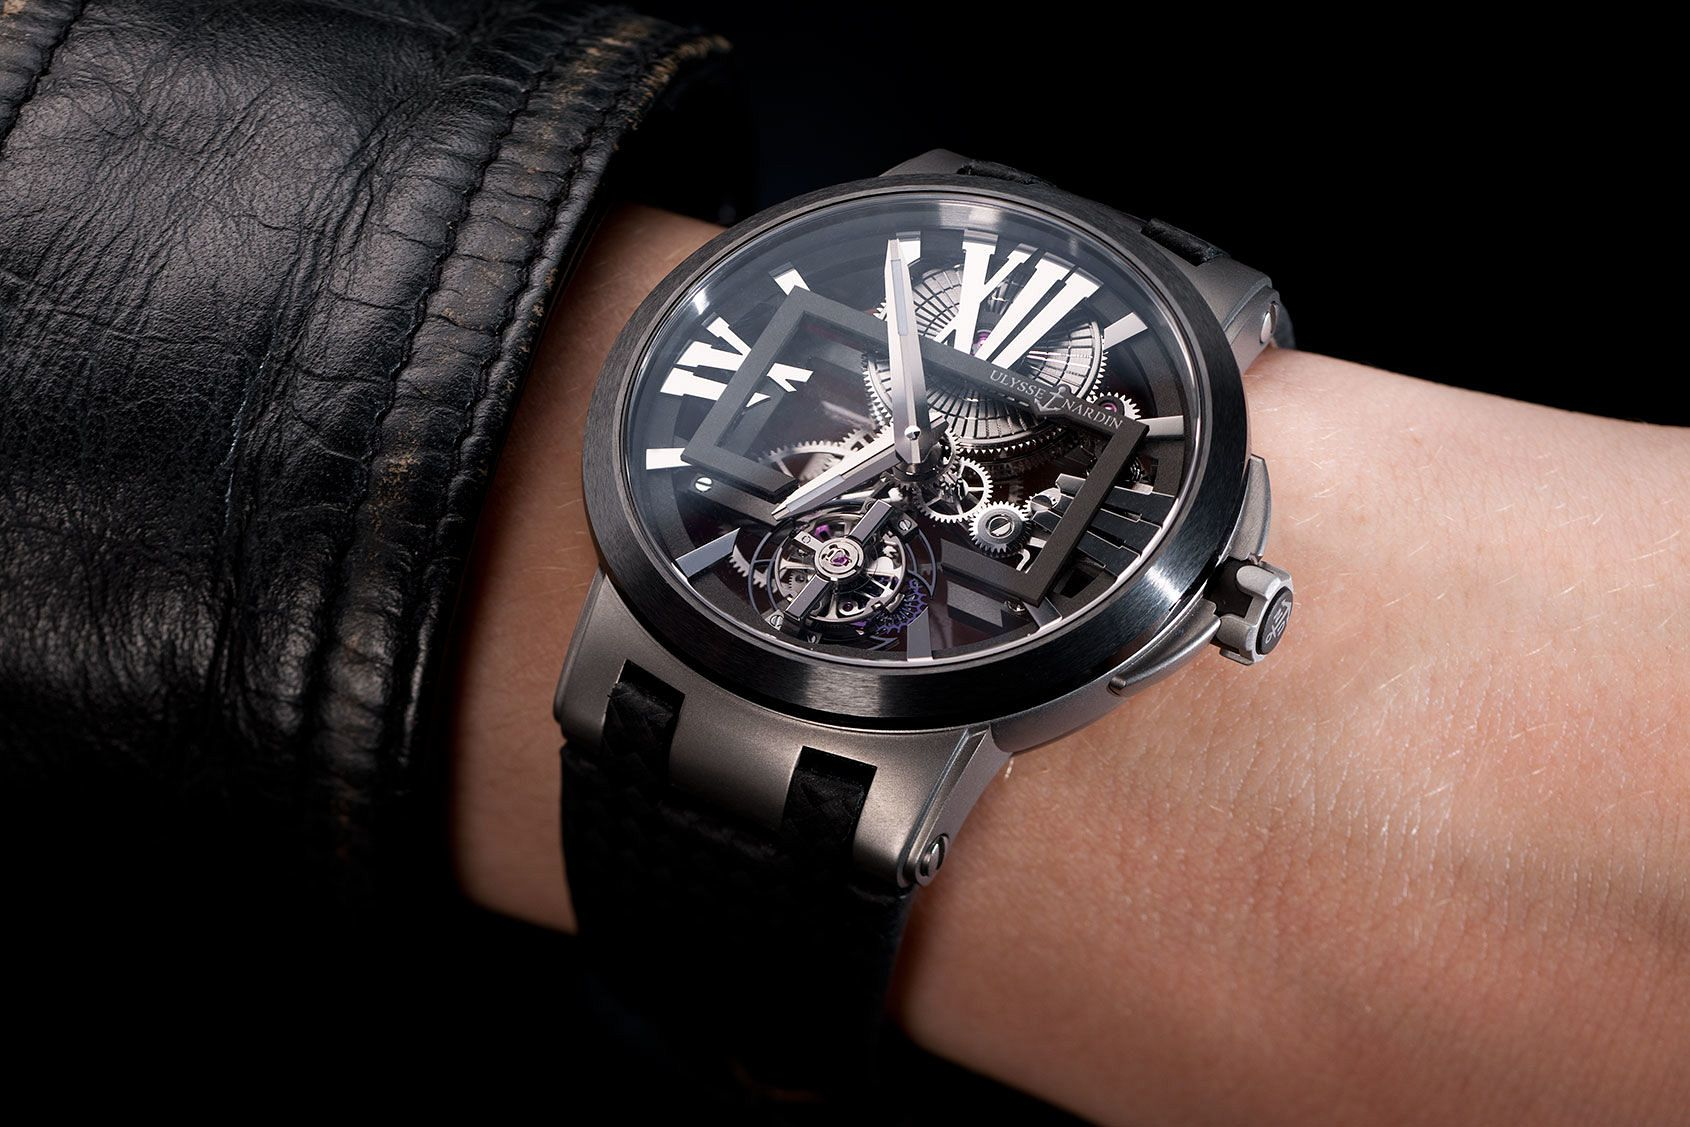 Presenting The New Ulysse Nardin Executive Tourbillon Replica